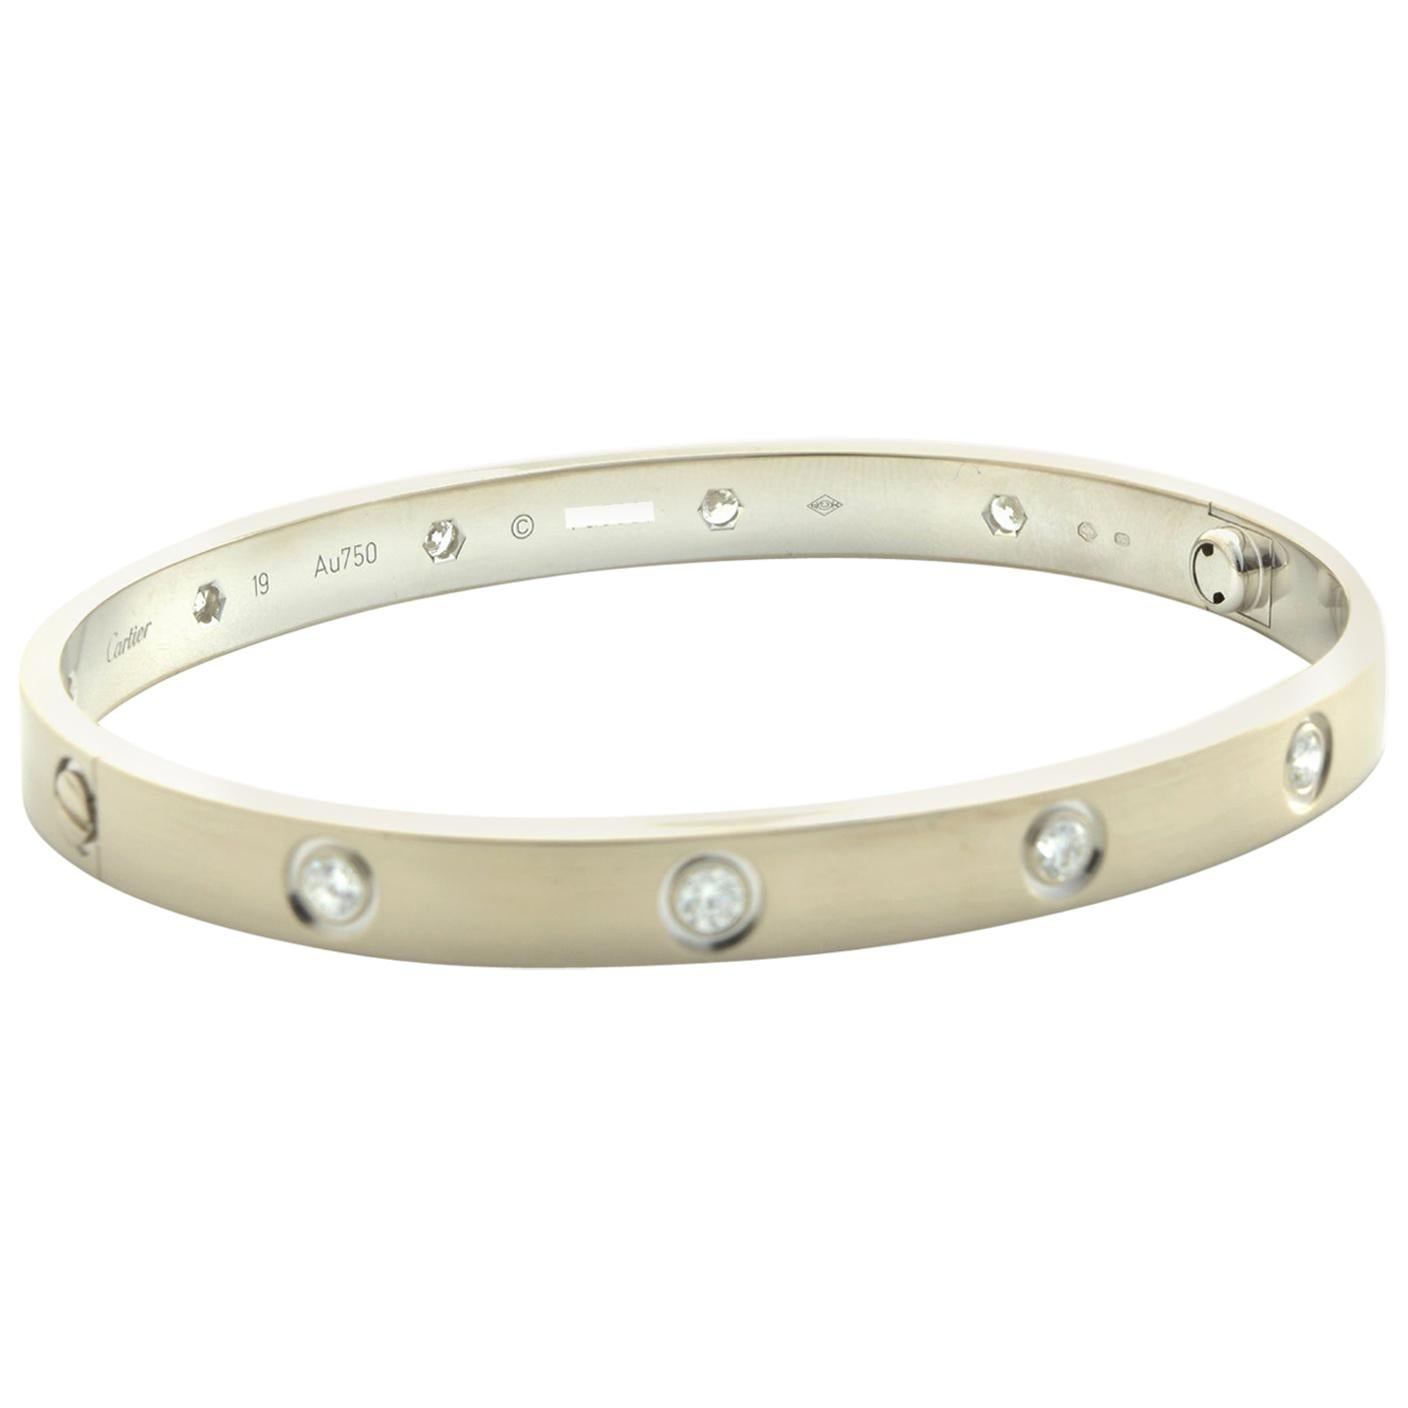 Cartier Love Bangle 10 Diamond 'C-430'